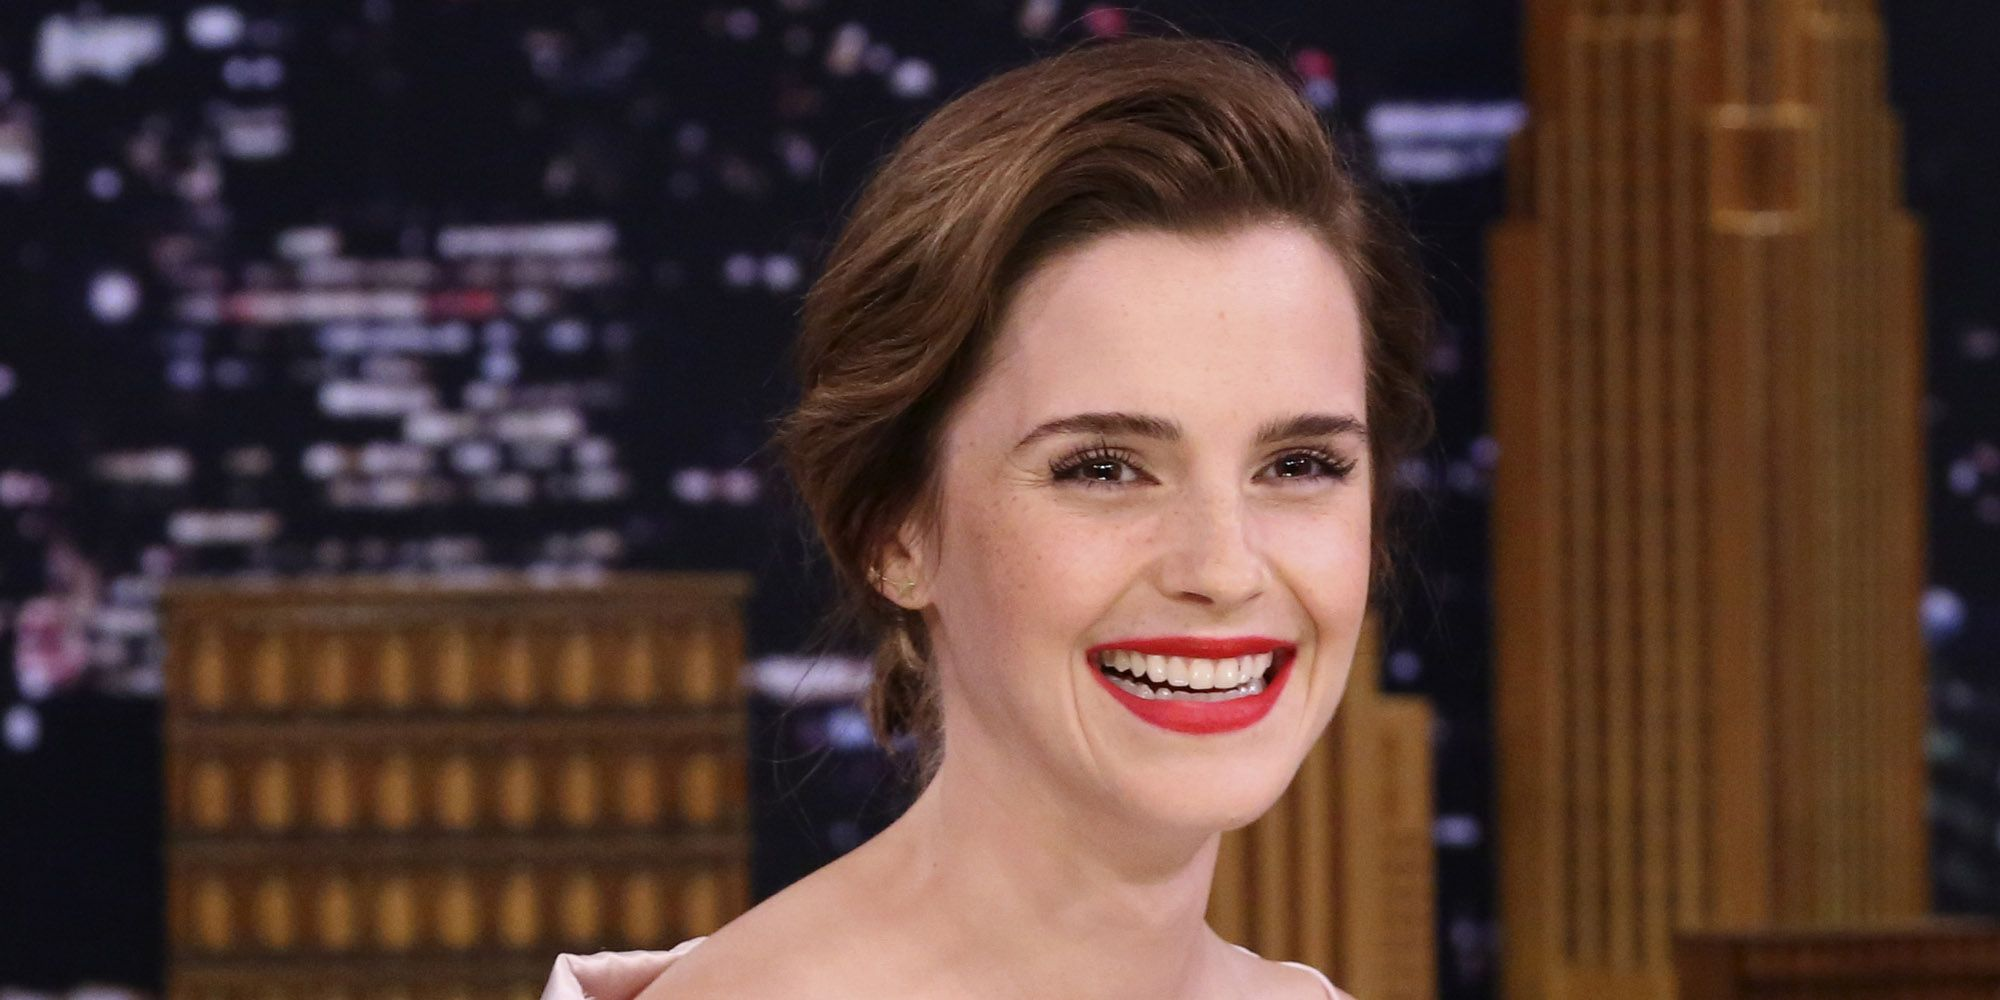 Emma Watson Let a Group of Kids Interview Her and It's Adorable